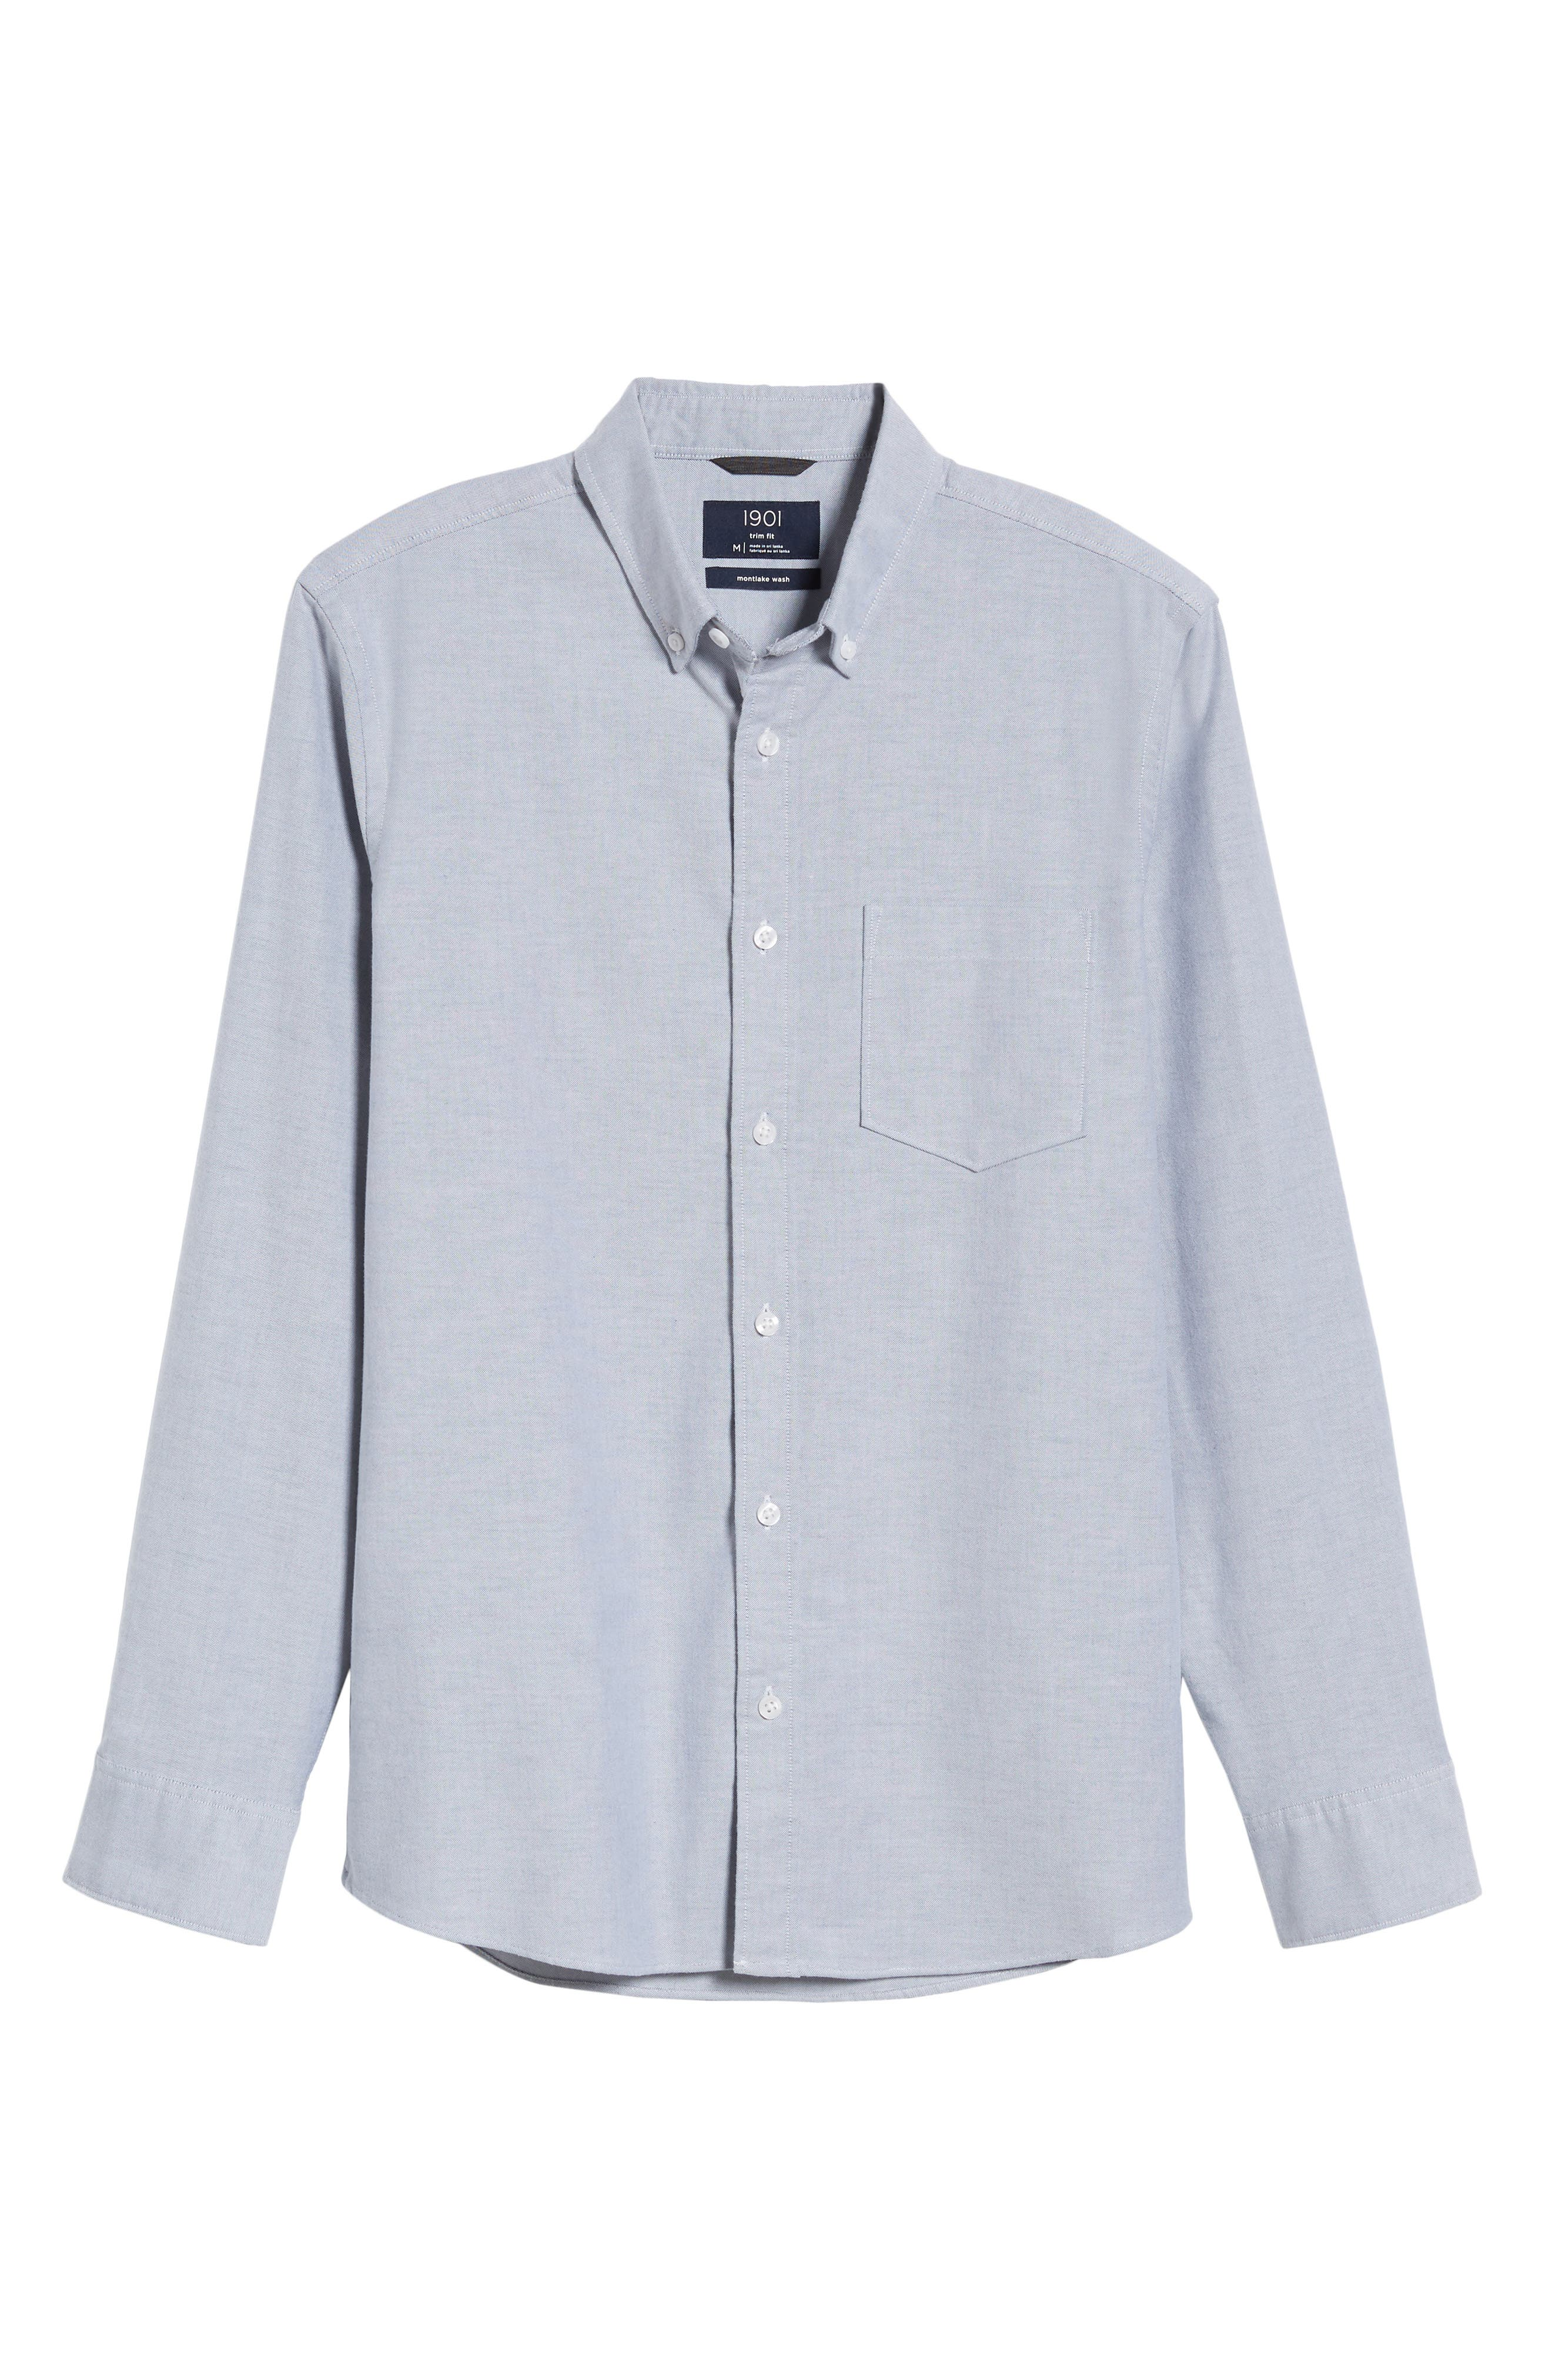 Trim Fit Washed Oxford Shirt,                             Alternate thumbnail 6, color,                             GREY MAGNET OXFORD